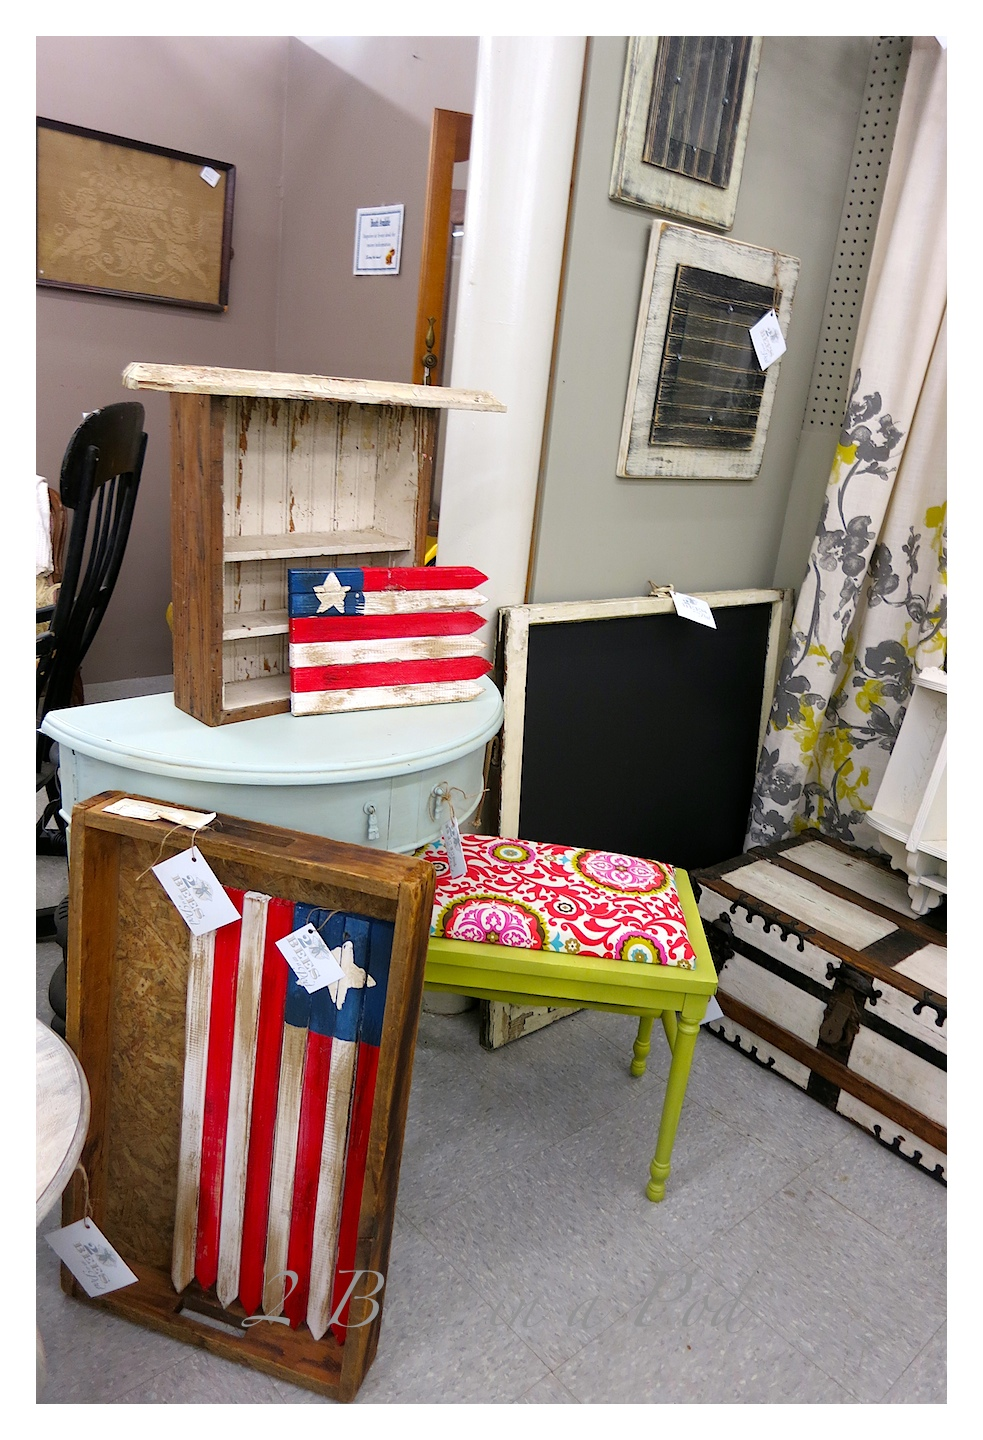 This is our new sales space to share our painted furniture, handmade items and vintage items.